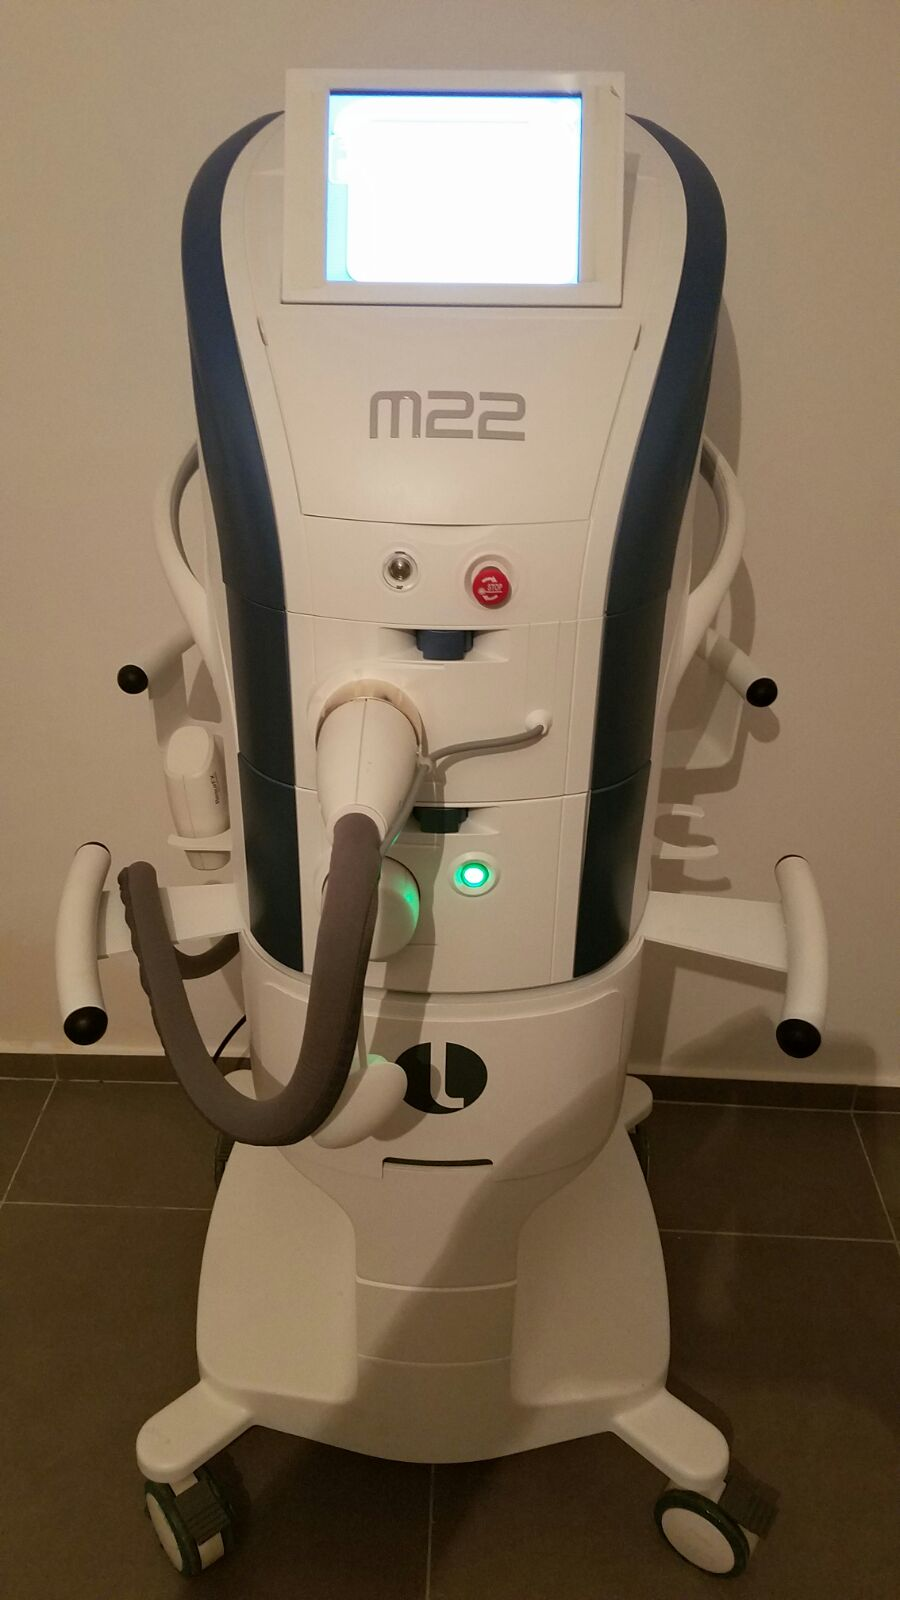 Lumenis M22 Brand New 2016 Laser Tech